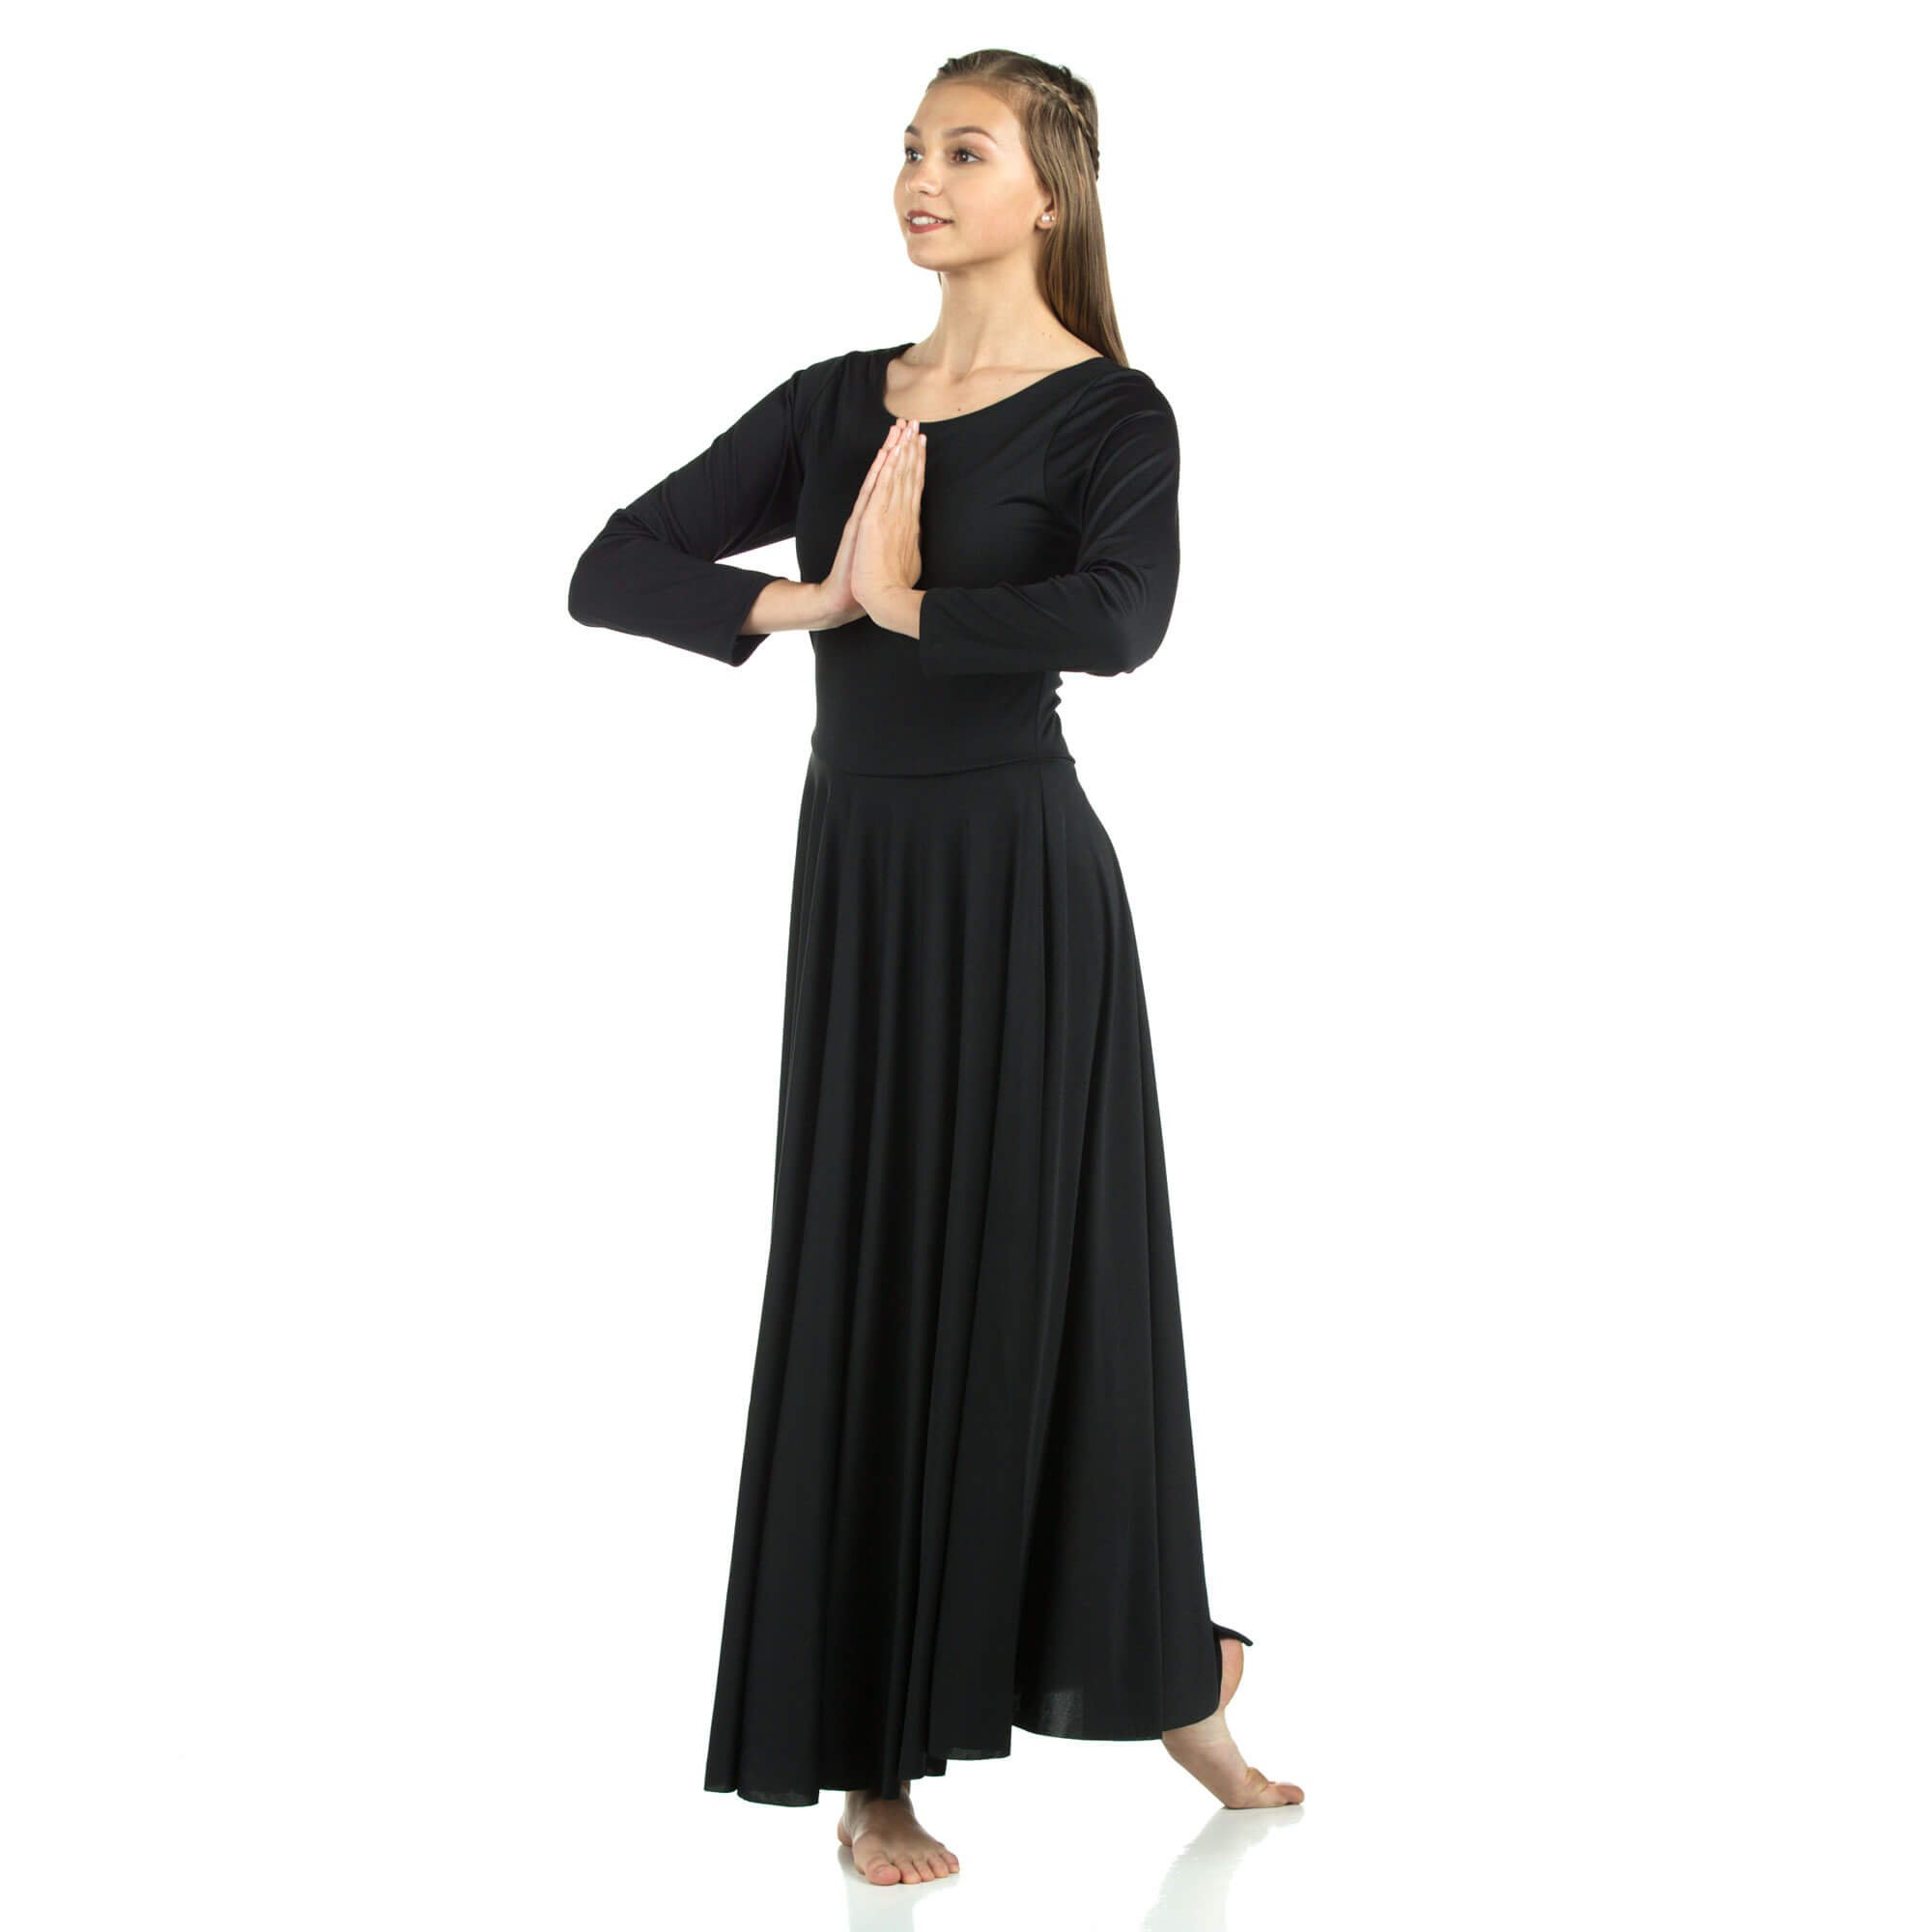 Danzcue Womens Praise Loose Fit Full Length Long Sleeve Dance Dress, Black, X-Large by Danzcue